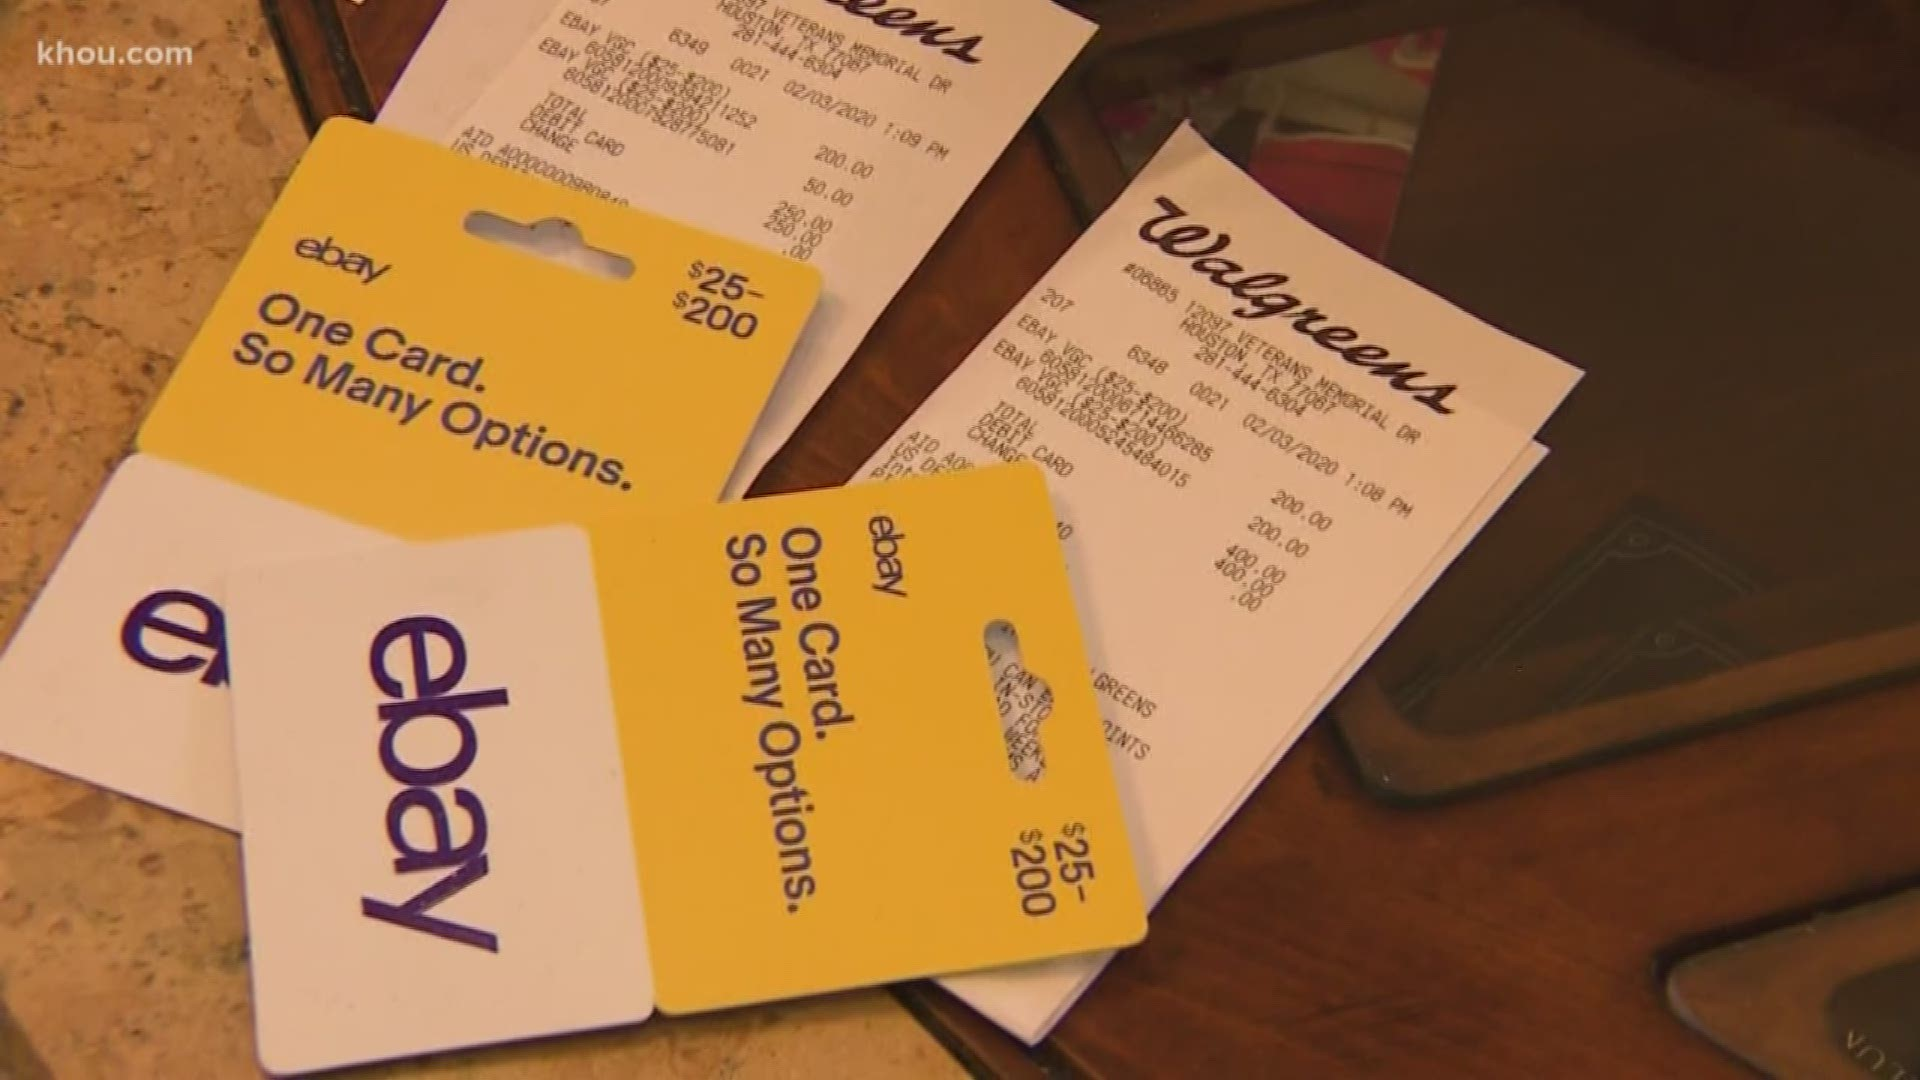 Gift Card Scam Targets At T Customers Khou Com